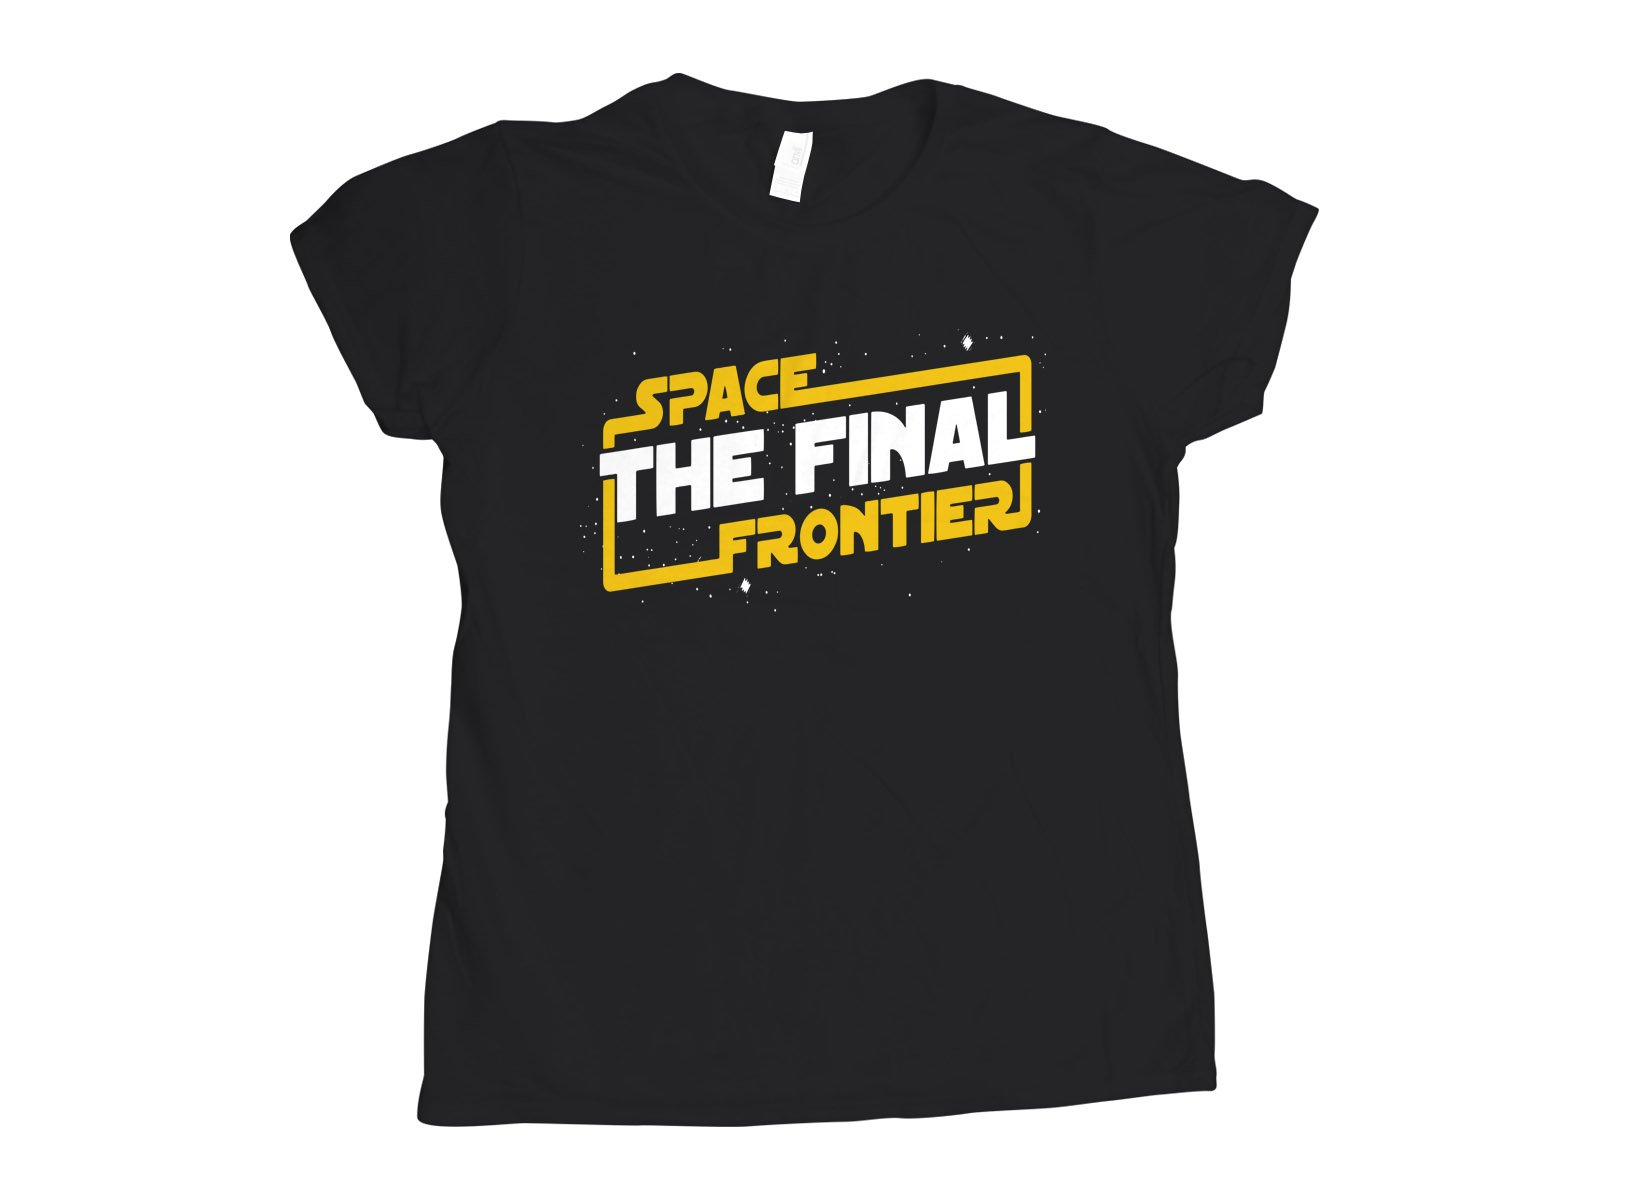 Space The Final Frontier on Womens T-Shirt